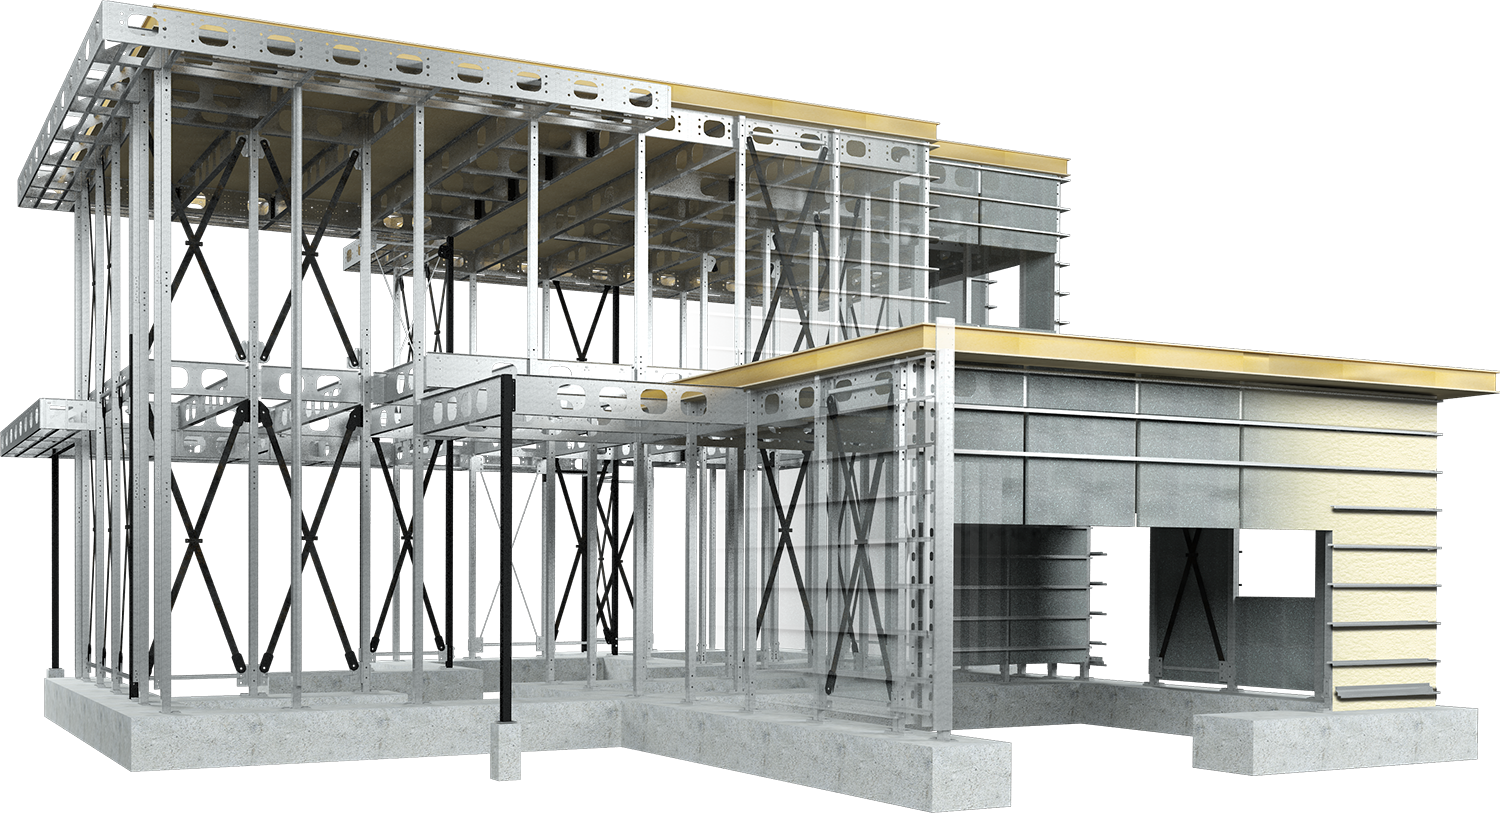 Transparent building structural. Steel construction technology environmentally